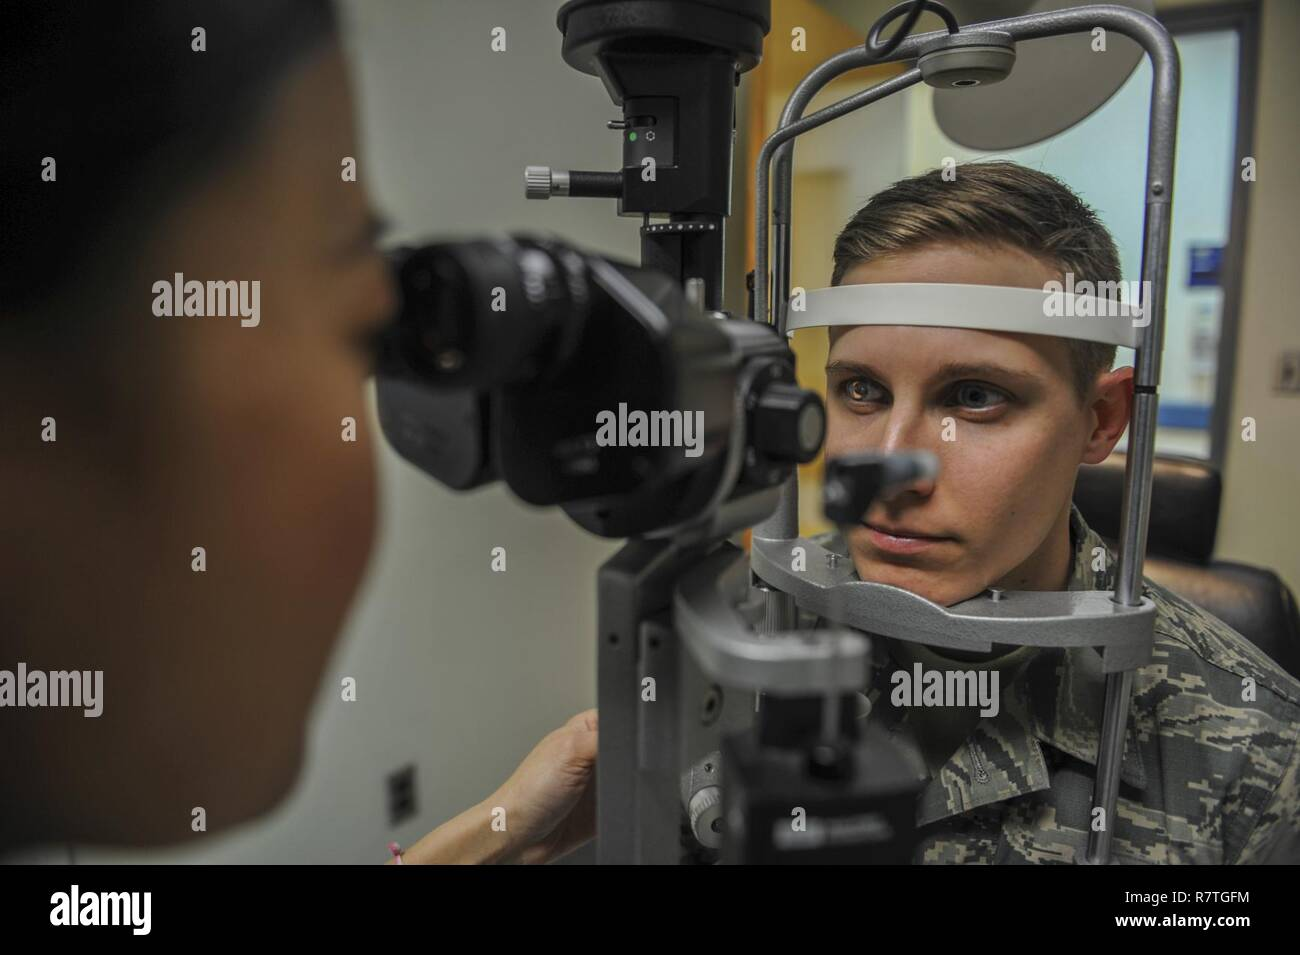 U.S. Air Force Maj. See Vang, 51st Aerospace Medicine Squadron optometry flight commander, left, scans the eye of Staff Sgt. River Carson, 8th Medical Operations Squadron public health technician, using the slit lamp during his eye exam at Kunsan Air Base, Republic of Korea, March 24, 2017. The slit lamp uses an intense beam of light to show the eye in detail to check for abnormalities during eye checkups. - Stock Image